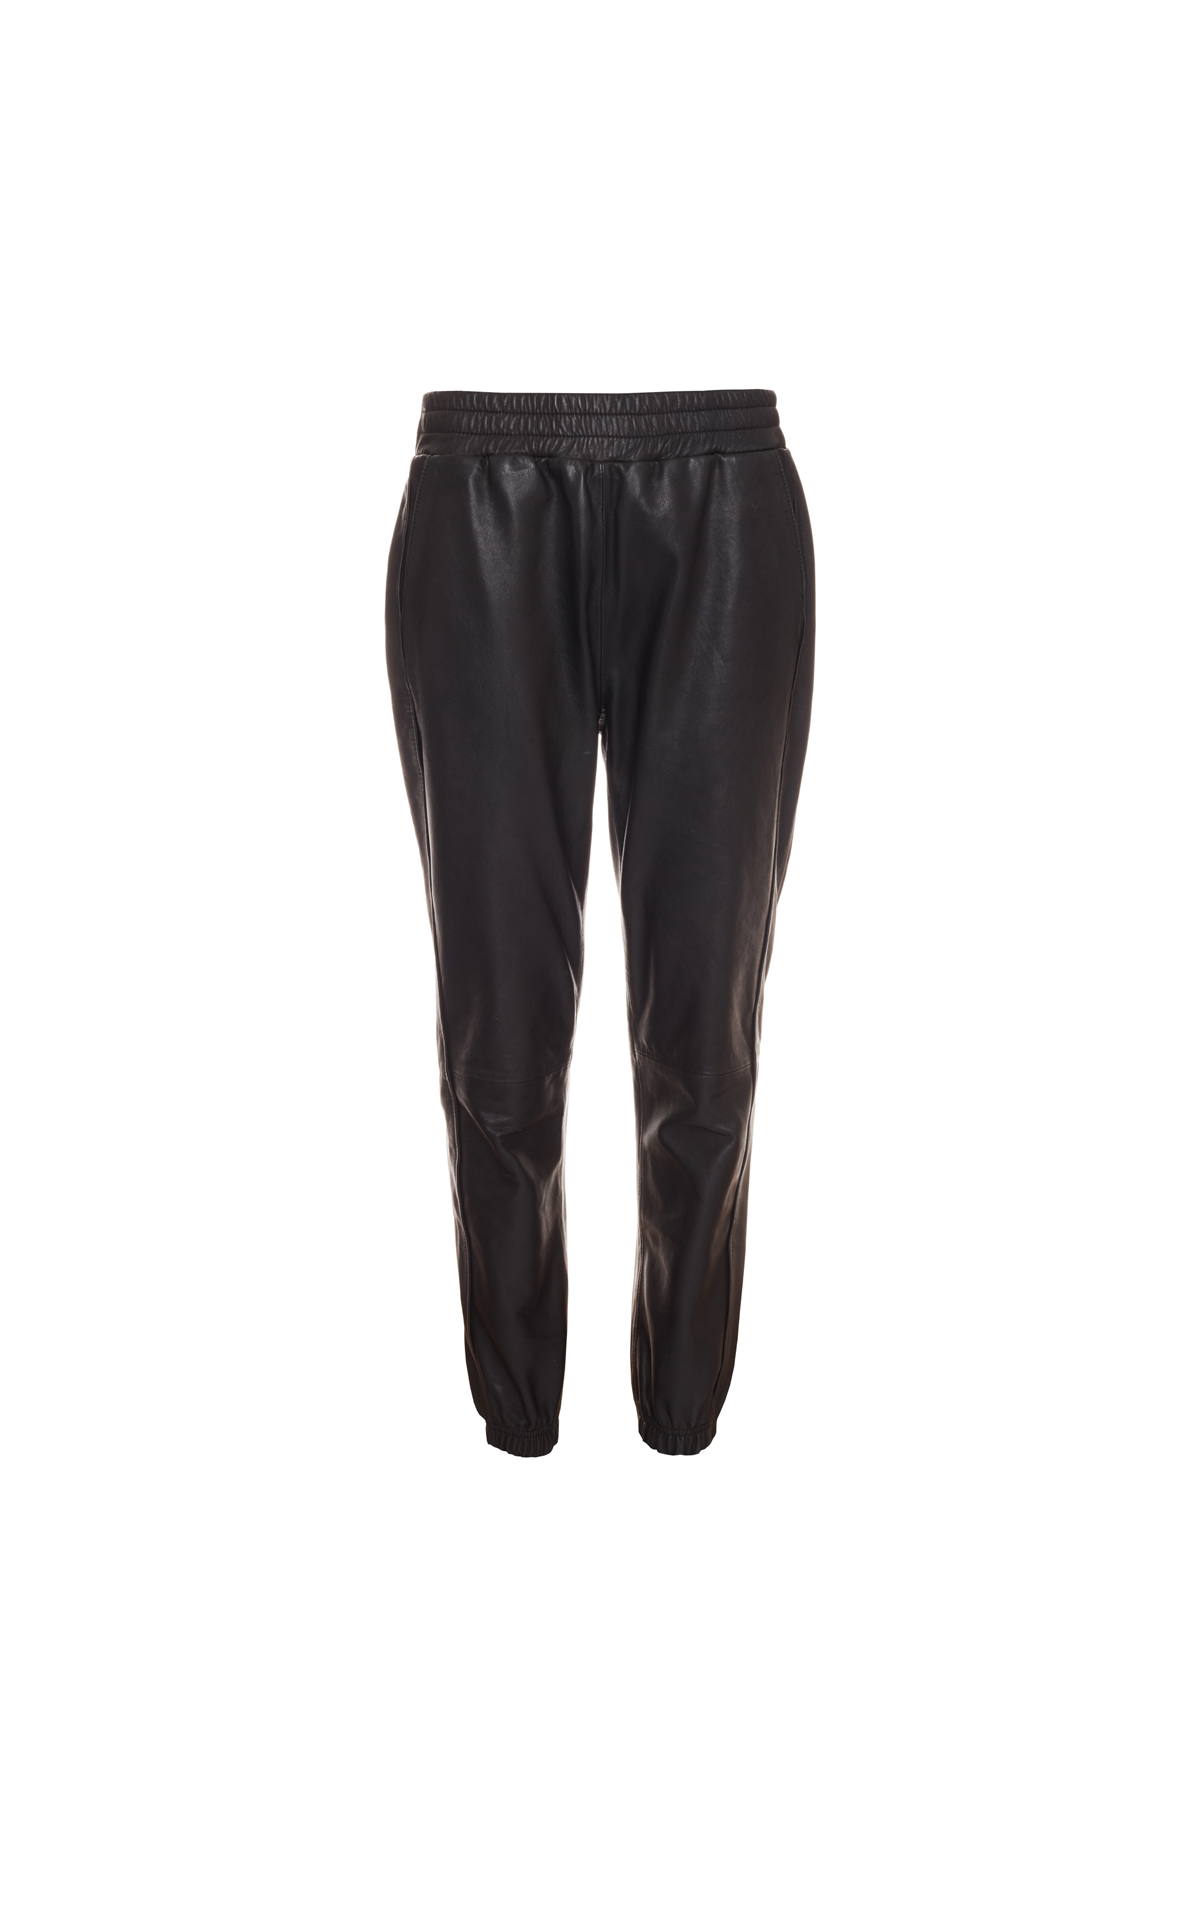 DKNY Leather pants from Bicester Village